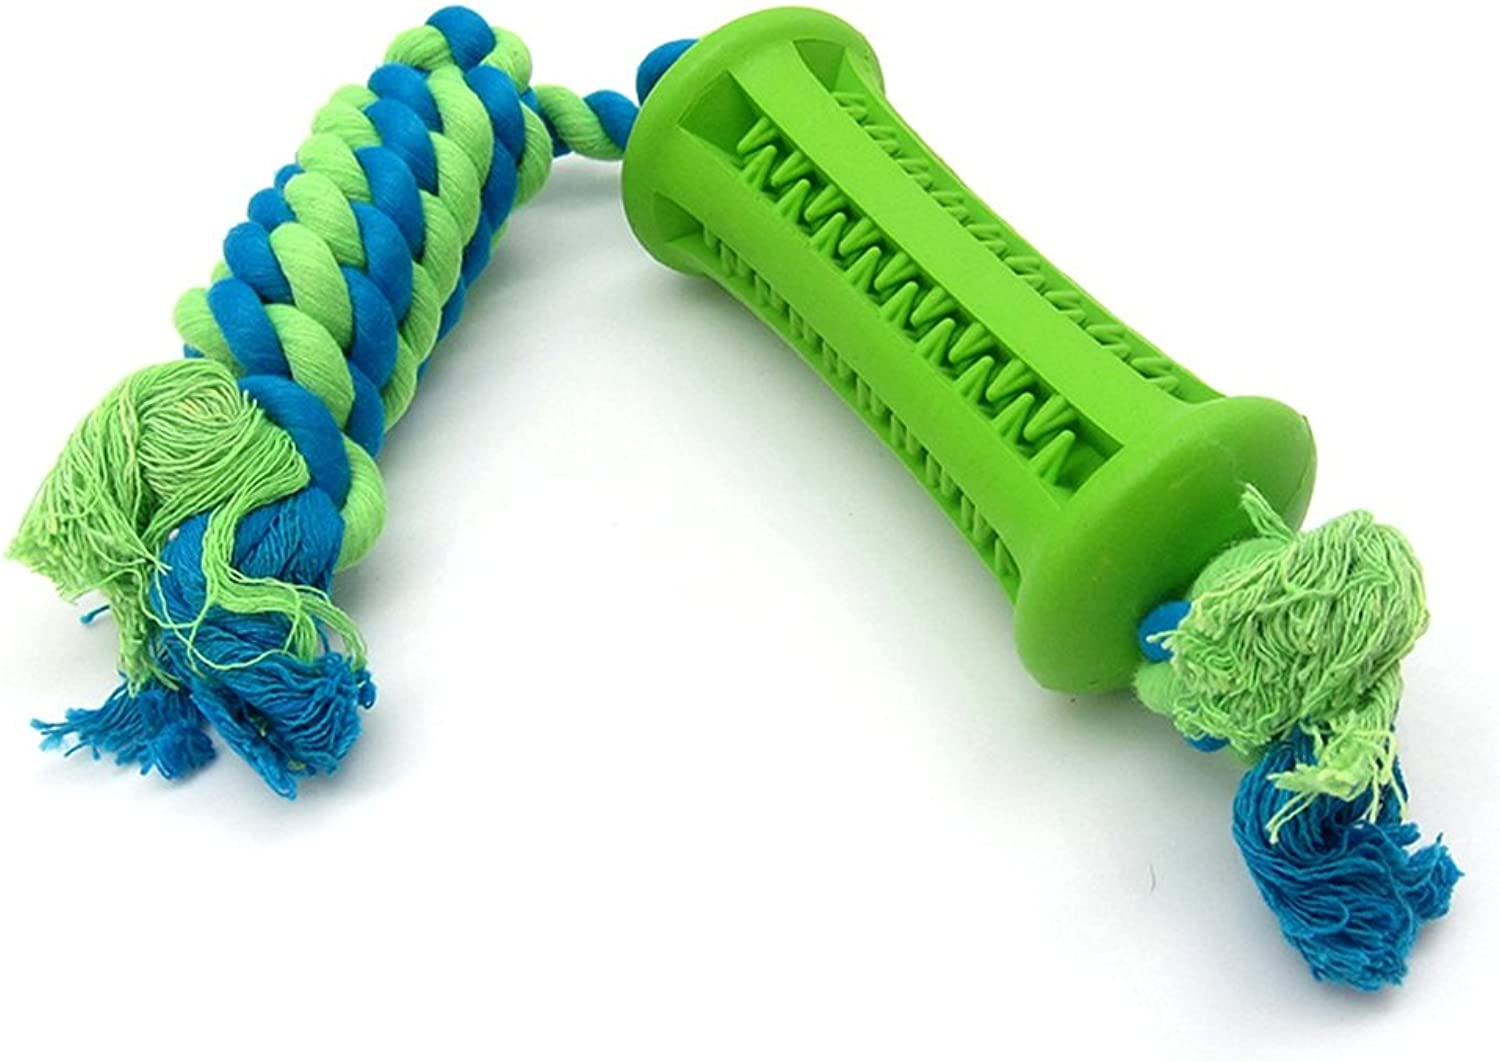 Dog Toy Rubber Bar with Rope for Dental Teeth Cleaning and Dog Treating Fits Small Dog, Bite Resistant and NonToxic